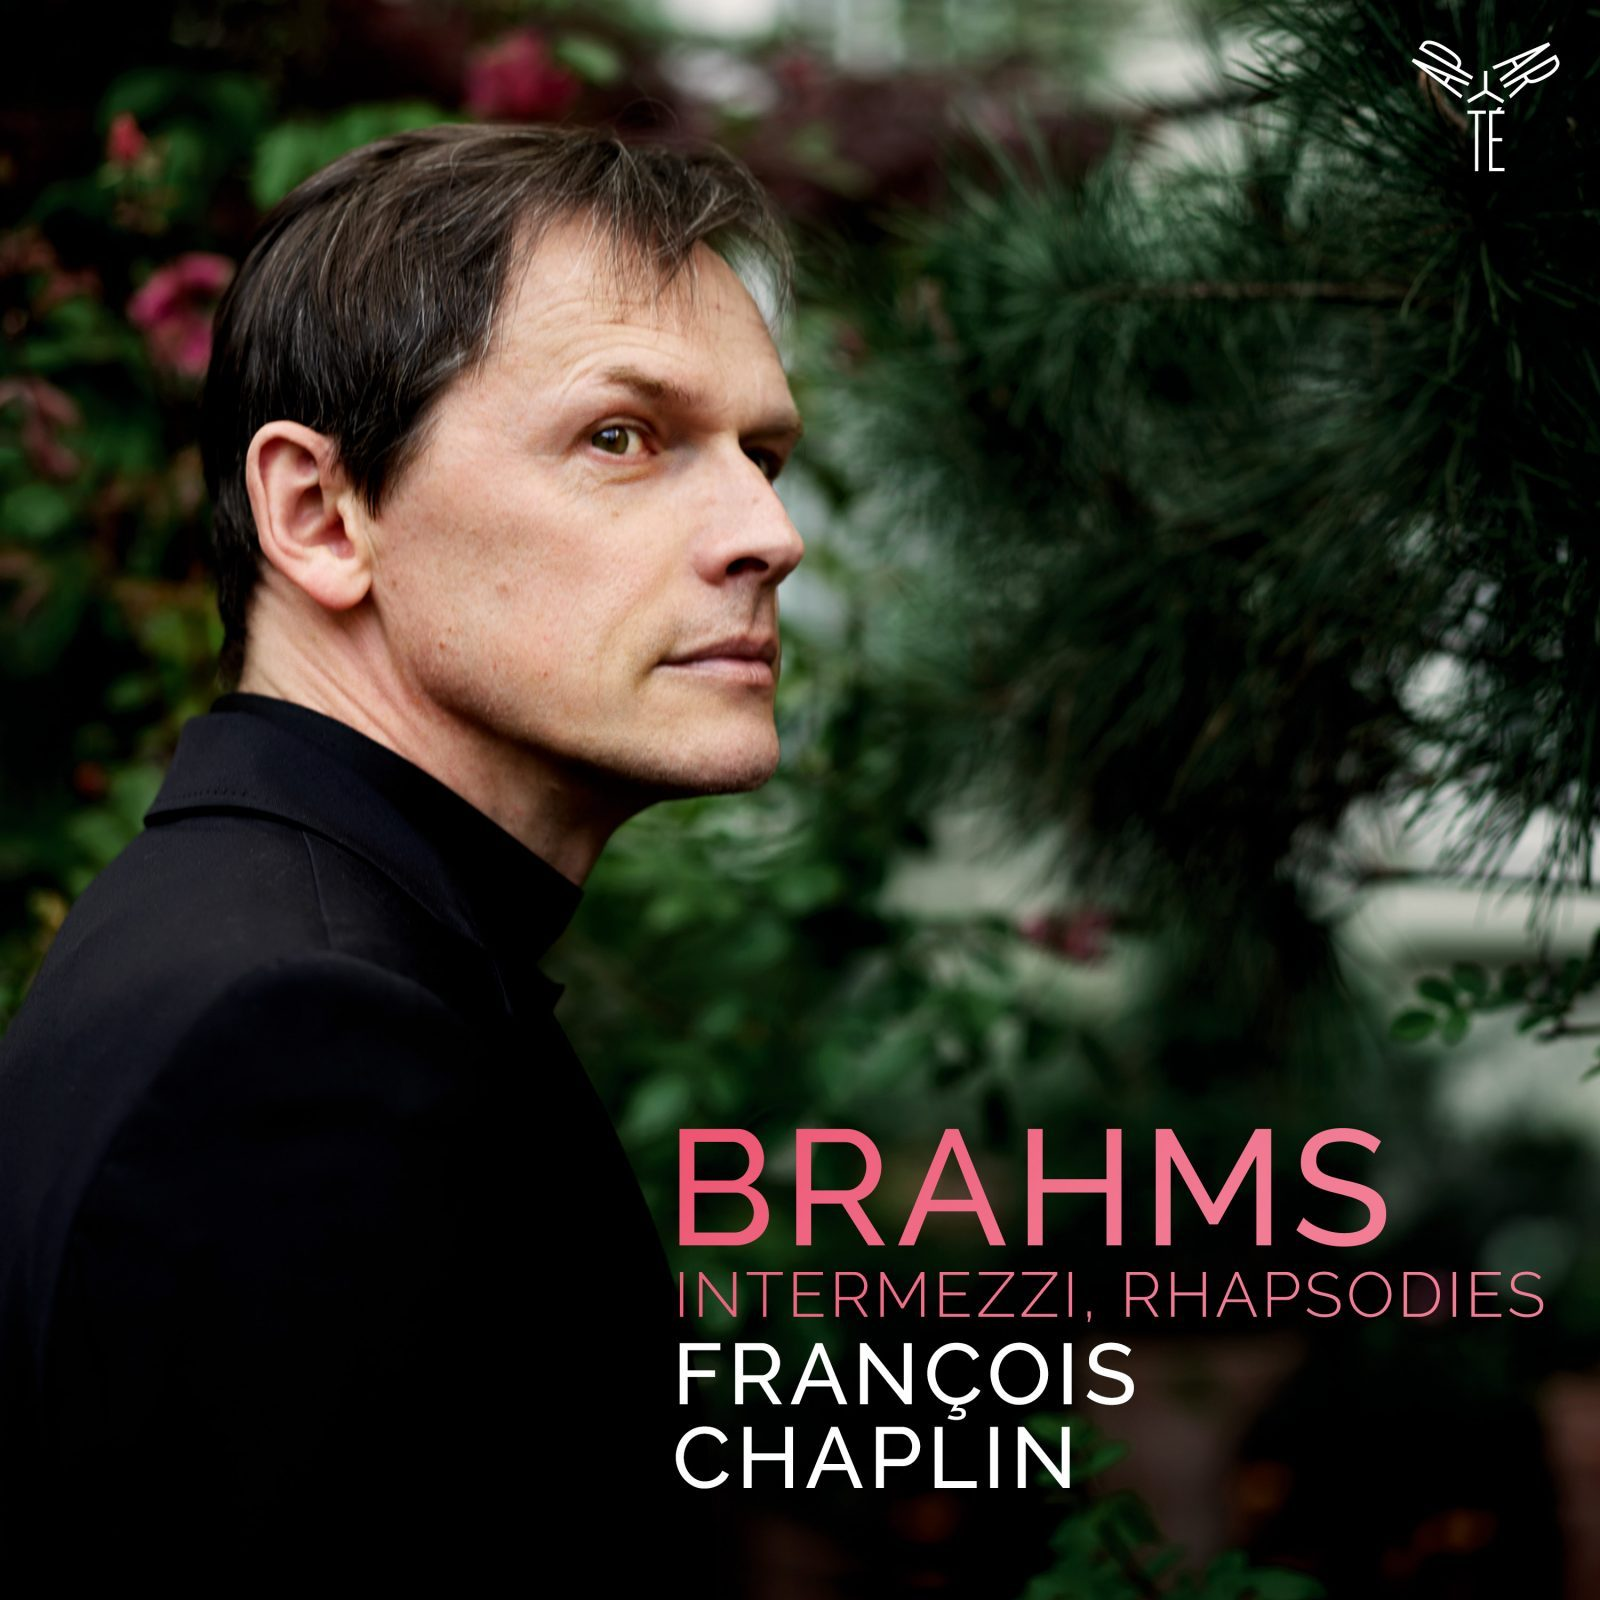 Brahms: Intermezzi, Rhapsodies